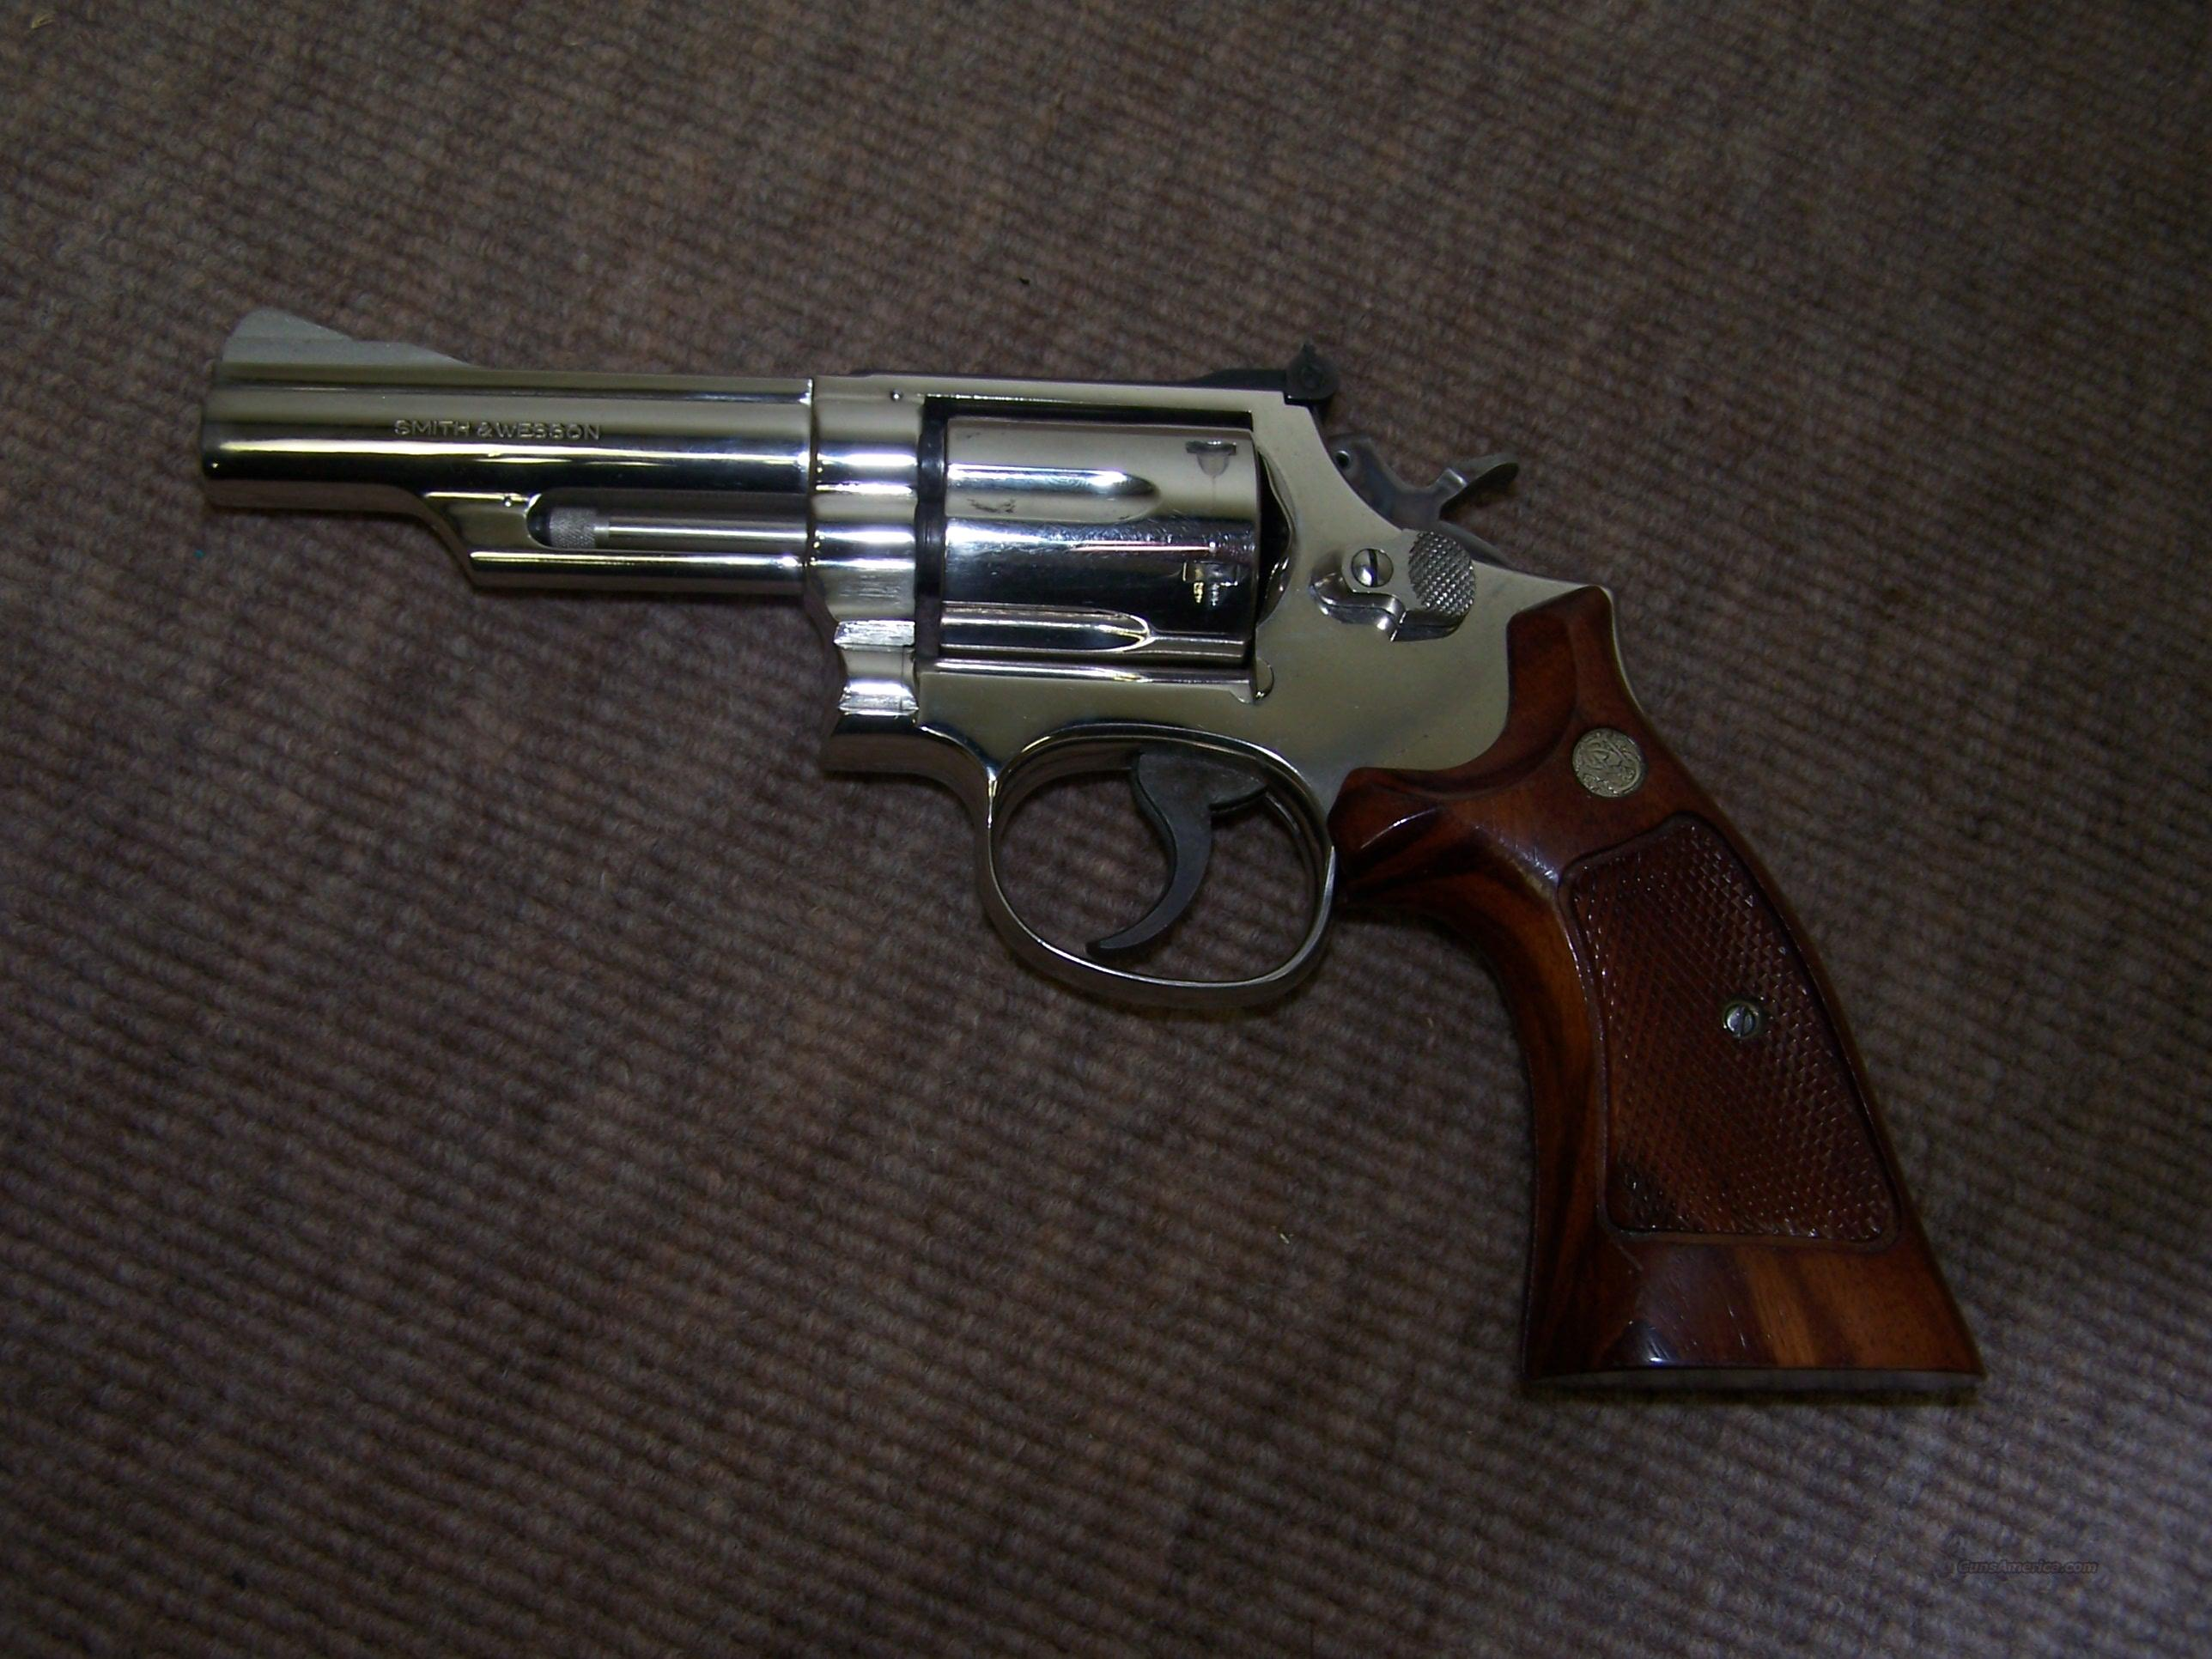 smith &wesson 19-4 nickel  Guns > Pistols > Smith & Wesson Revolvers > Full Frame Revolver